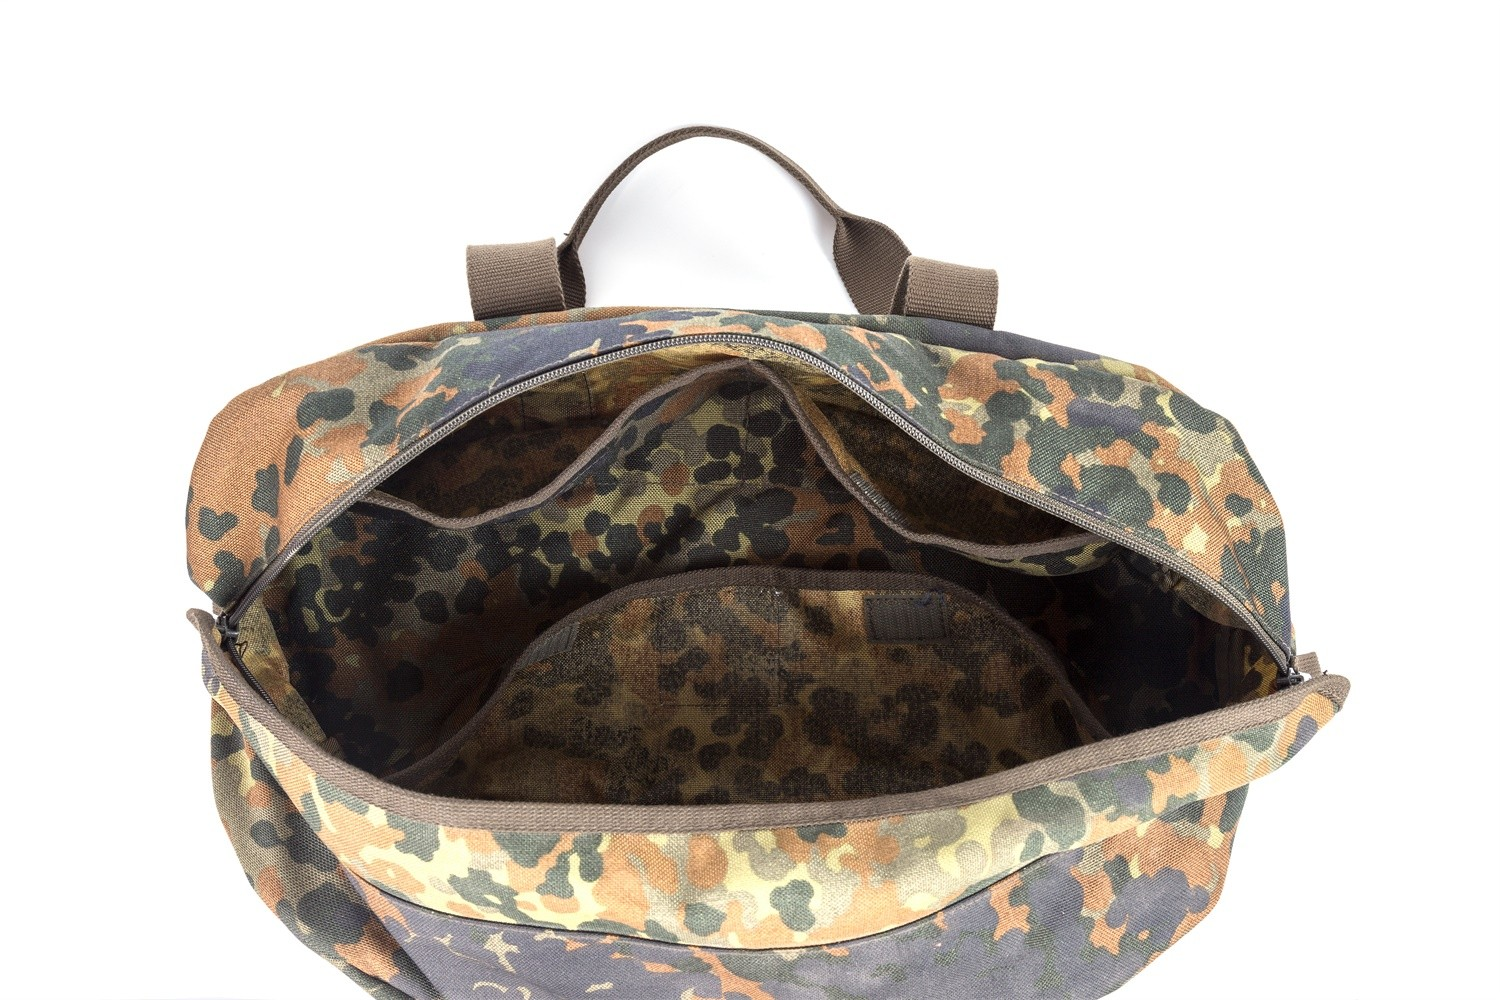 GF bags-Manufacturer Of Military Gear Bags, Military Tactical Bag On GF Bags-7